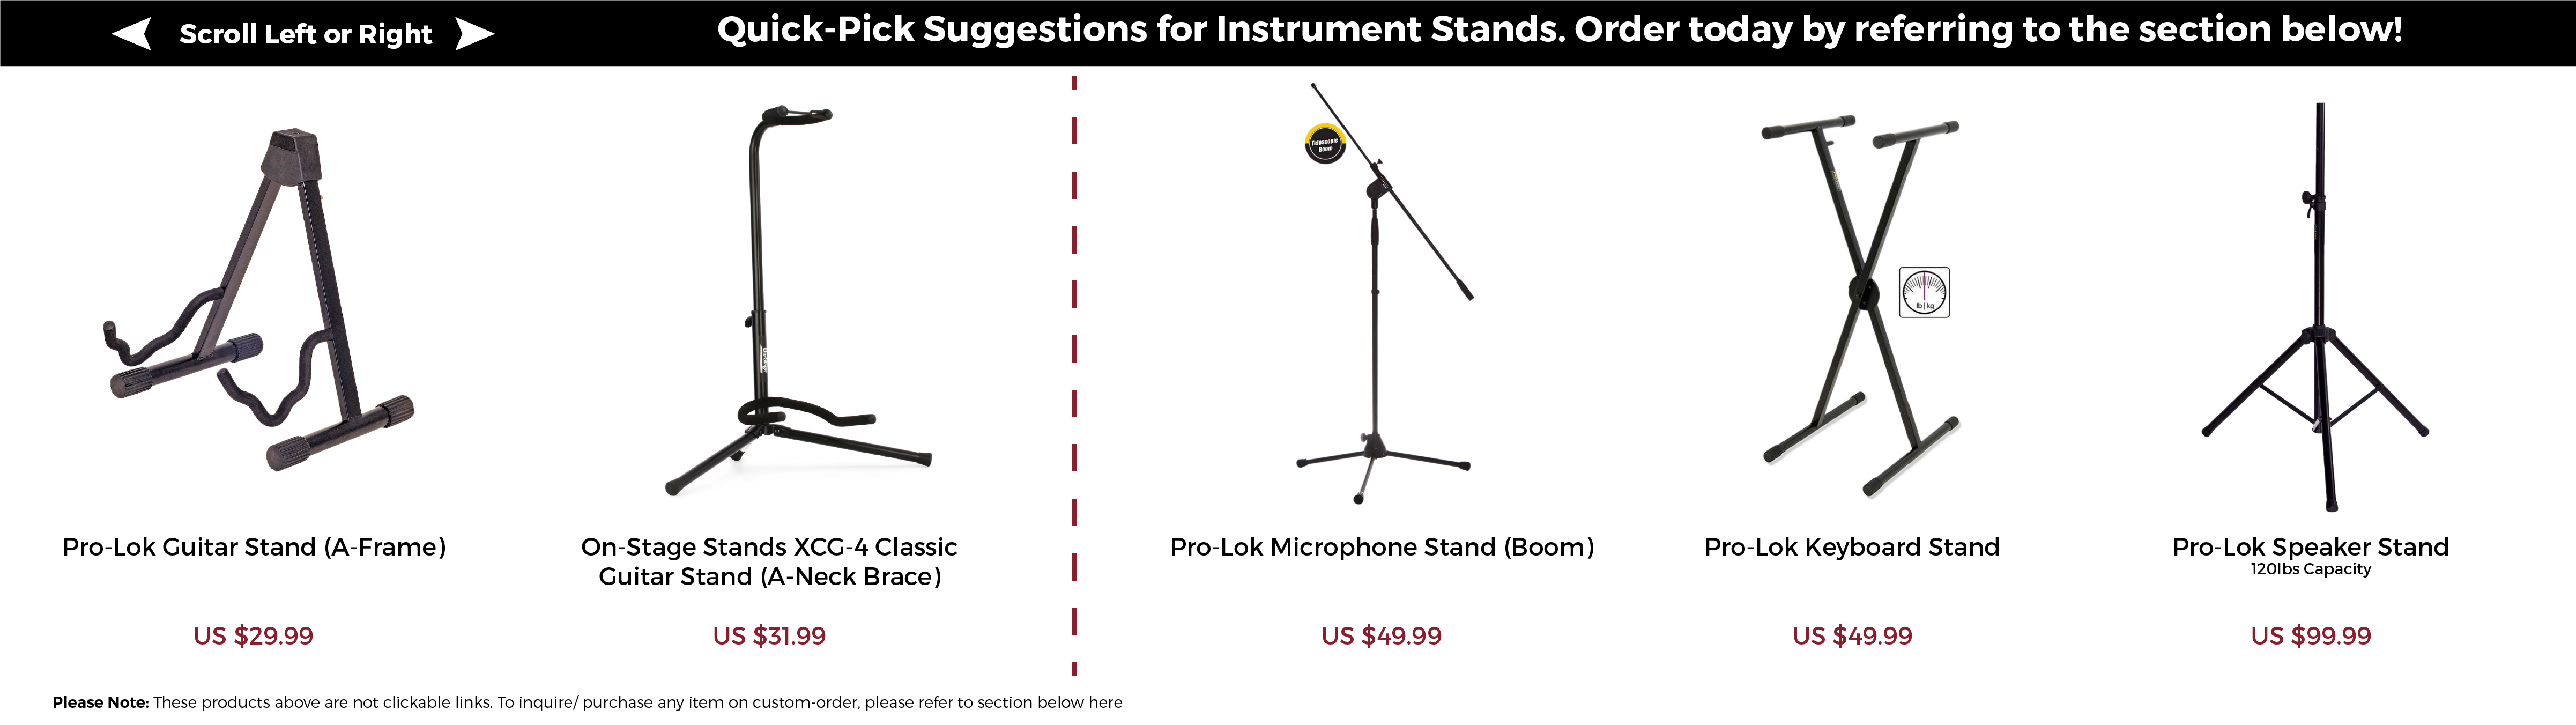 LW-TAB-Instrument-Stands-Options-TAB.png